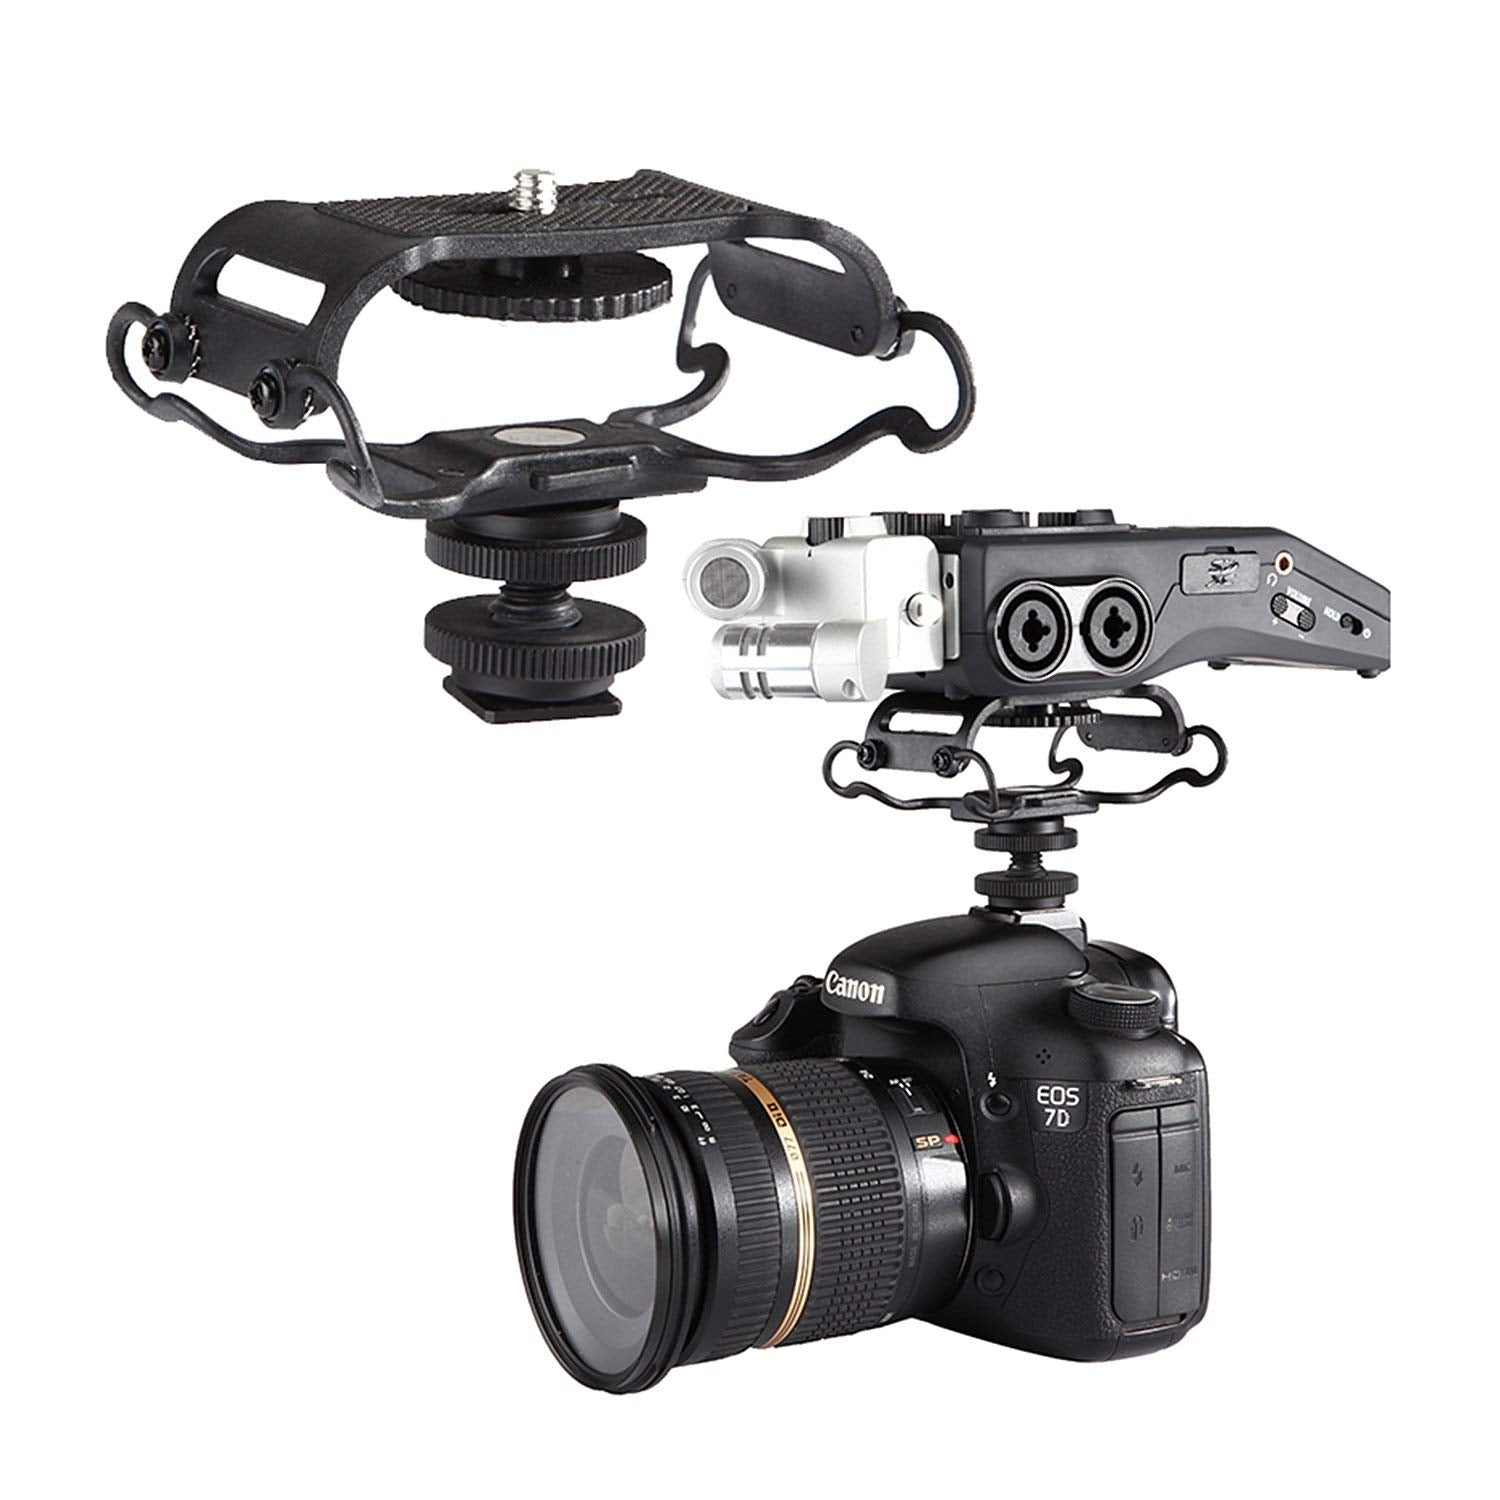 BOYA BY-C10 Universal Microphone and Portable Recorder Shock Mount - Fits the Zoom H4n H5 H6 Tascam DR-40 DR-05 DR-07 with 1/4 Mounting Screw